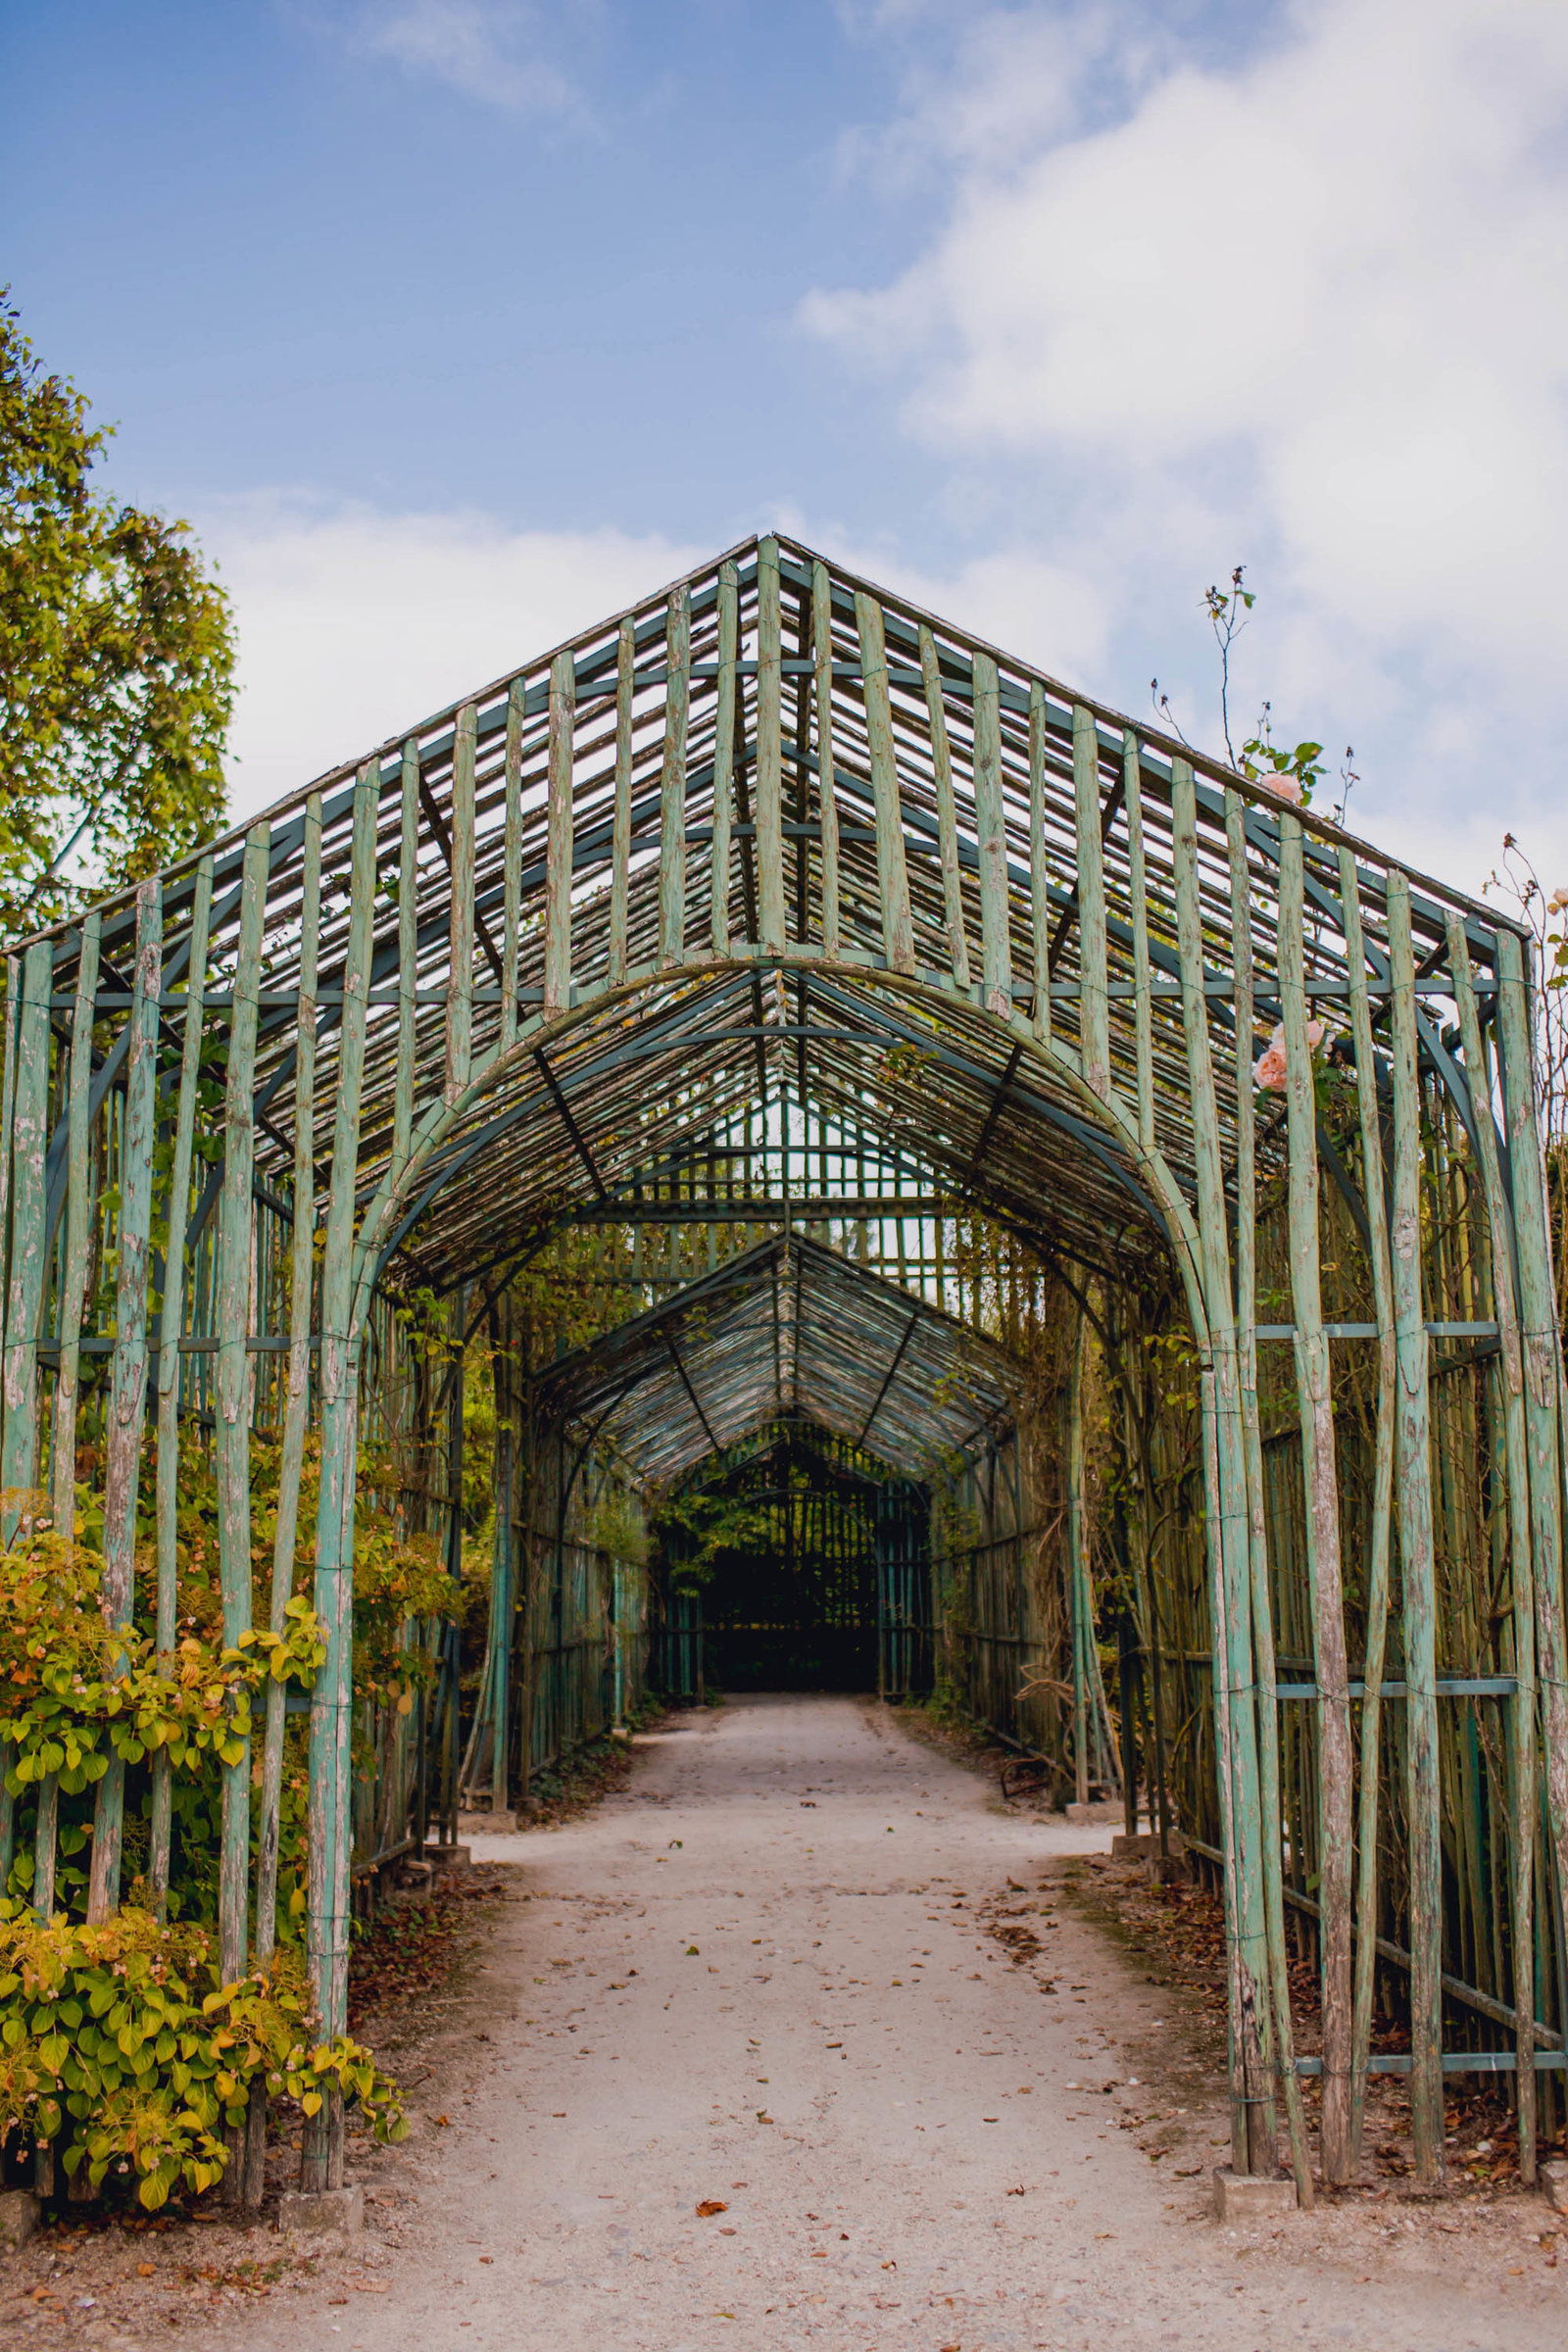 rose-garden-palace-versailles-france-travel-destination-kate-timbers-photography-1684